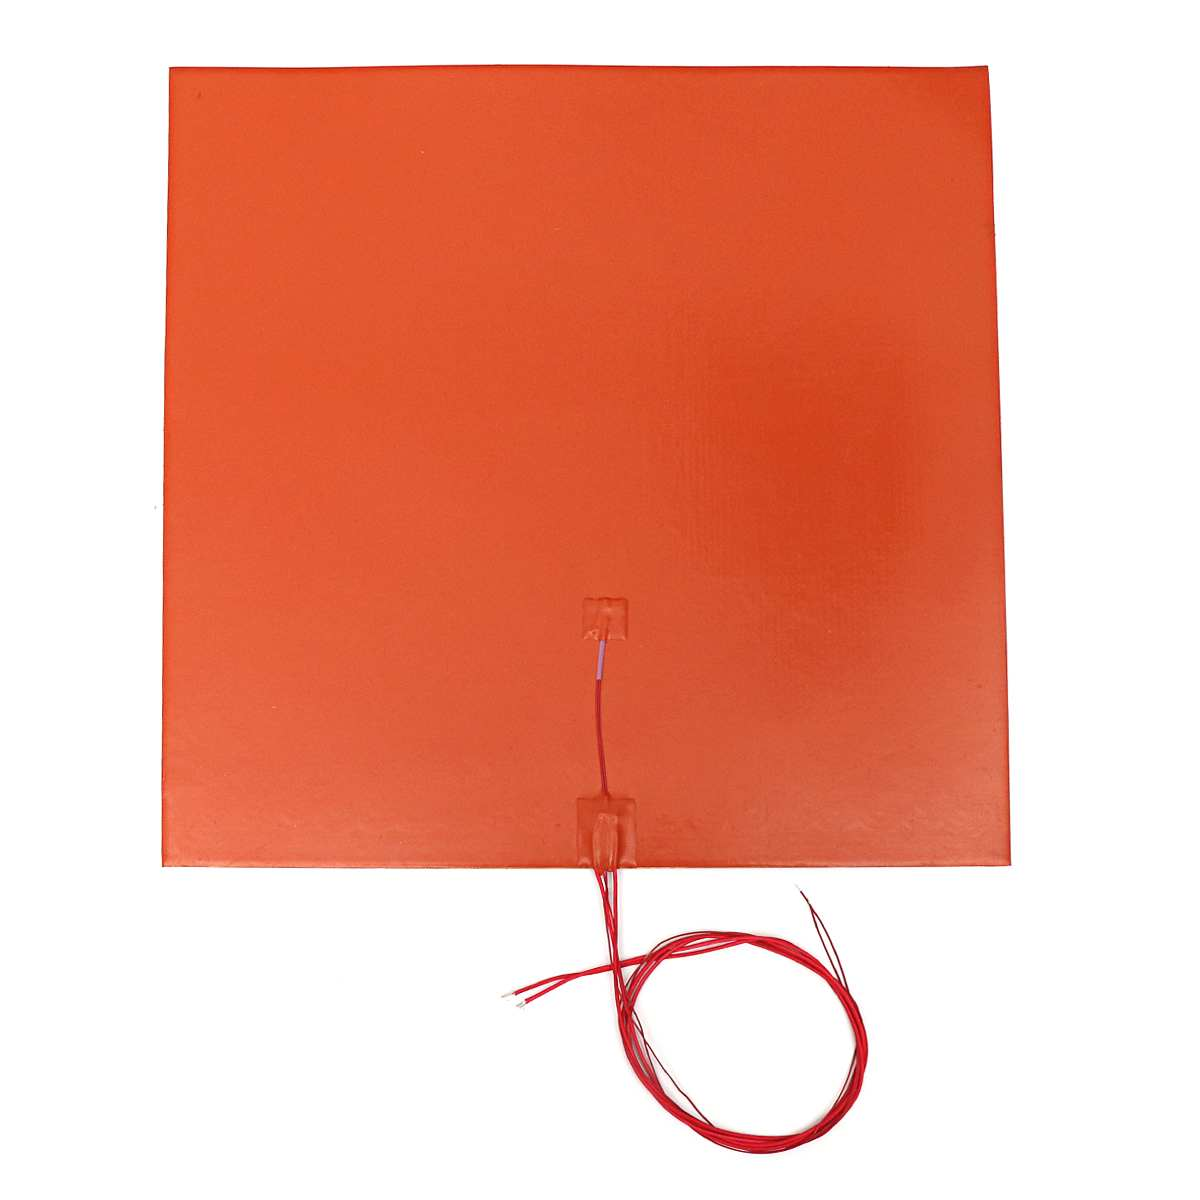 Silicone Heated Bed Heating Pad 110v 500mm 1400W Flexible Waterproof Pad Hot Bed Pad For 3D Printer Parts